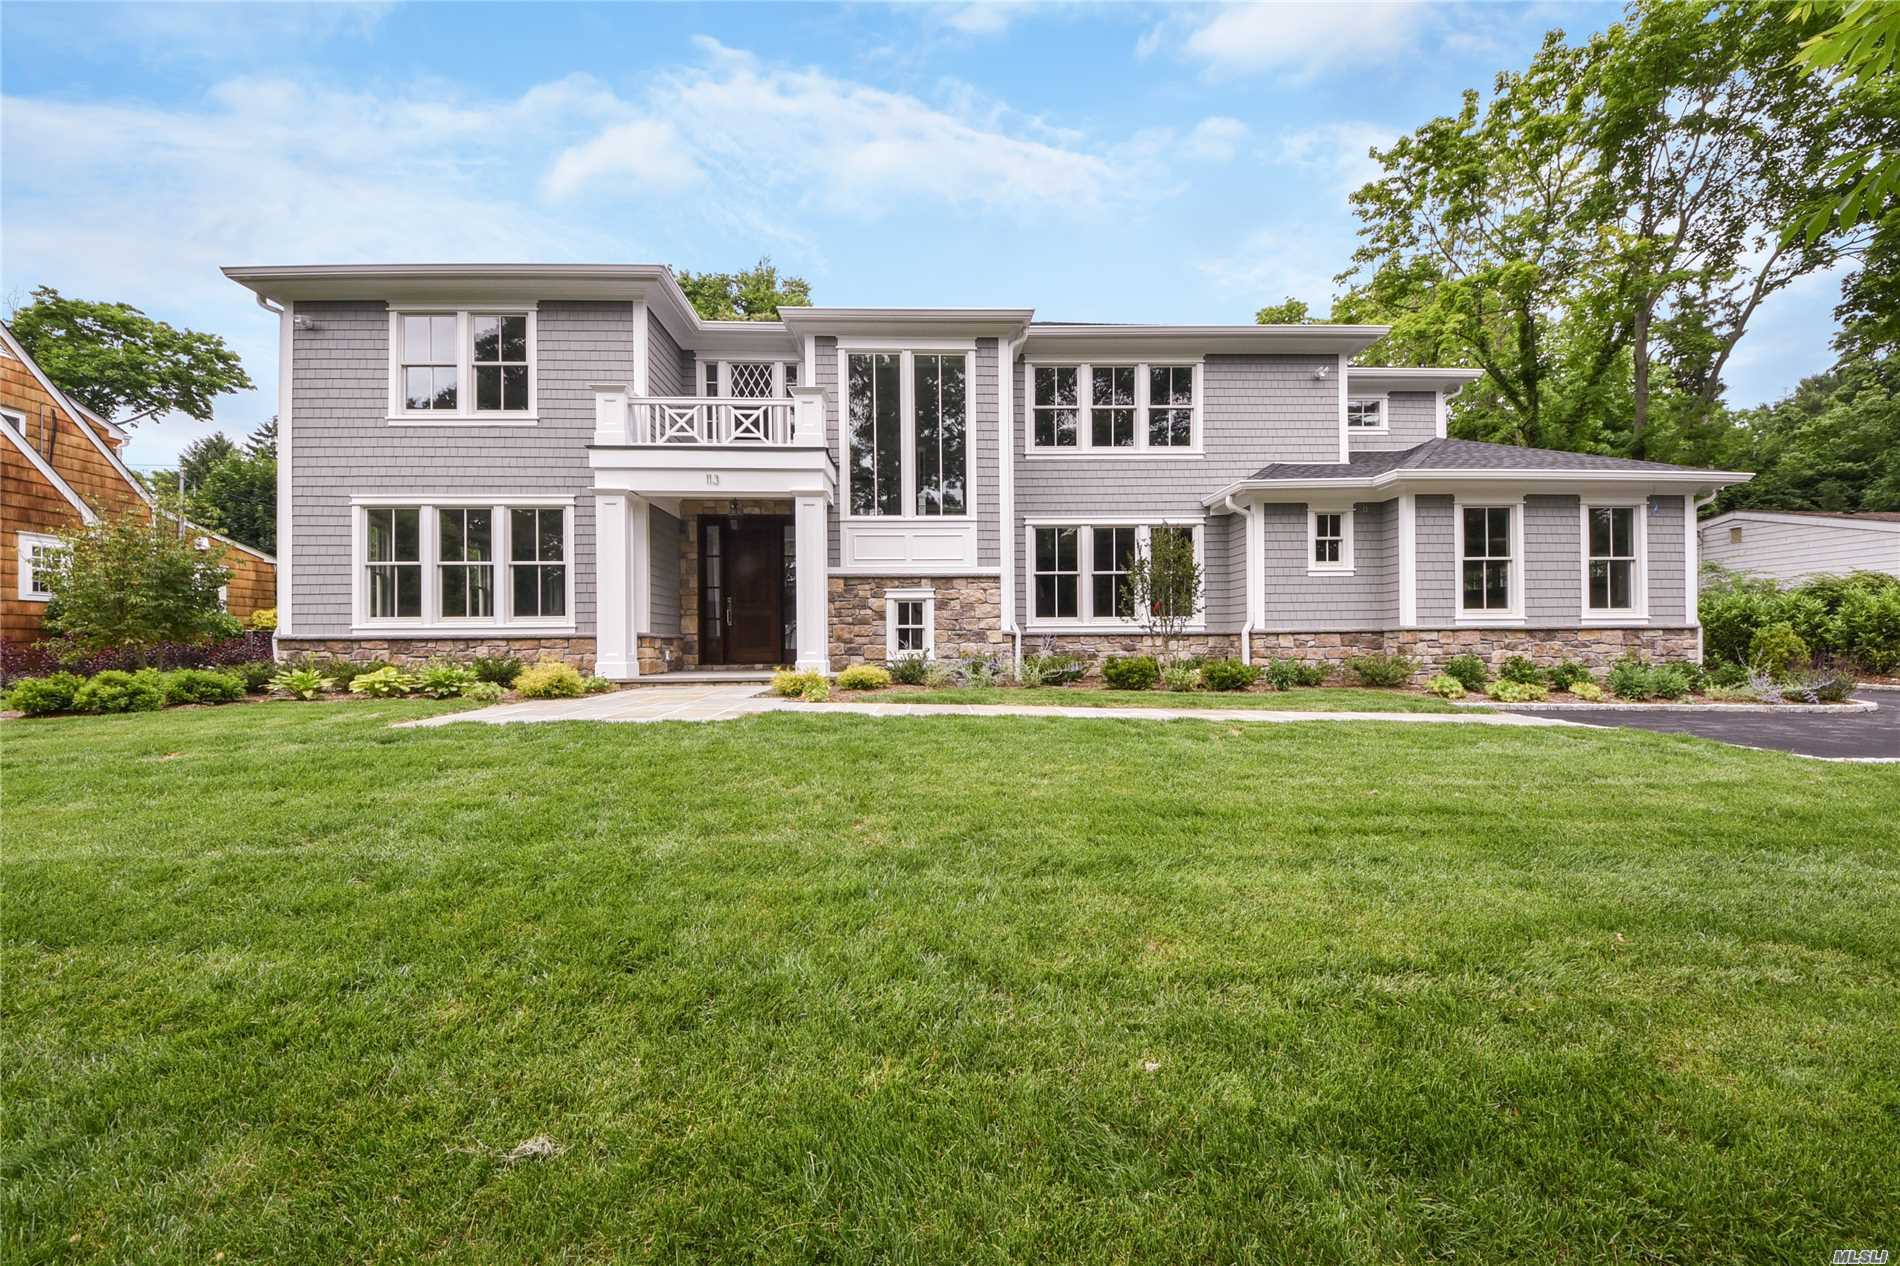 East Hills.2018 Center Hall Colonial Offering 4500 Square Foot Of Sundrenched Living Space With A Dramatic Entrance, 6 Generous Sized En-Suite Bedrooms, Open Layout, Custom Mill Work, Decorative Ceiling, Kitchen W/ Energy Efficient Stainless Steel Appliances, Family Room W/Doors Leading To Large Patio/Backyard, Designer's Bths W/ Radiant Heat, Mud Area With Customized Built-Ins, & A Finished Lower Level With High Ceilings, An Entertainment Room, Bedroom, Gym, Bth, & Bar.Membership To East Hills Pool & Park